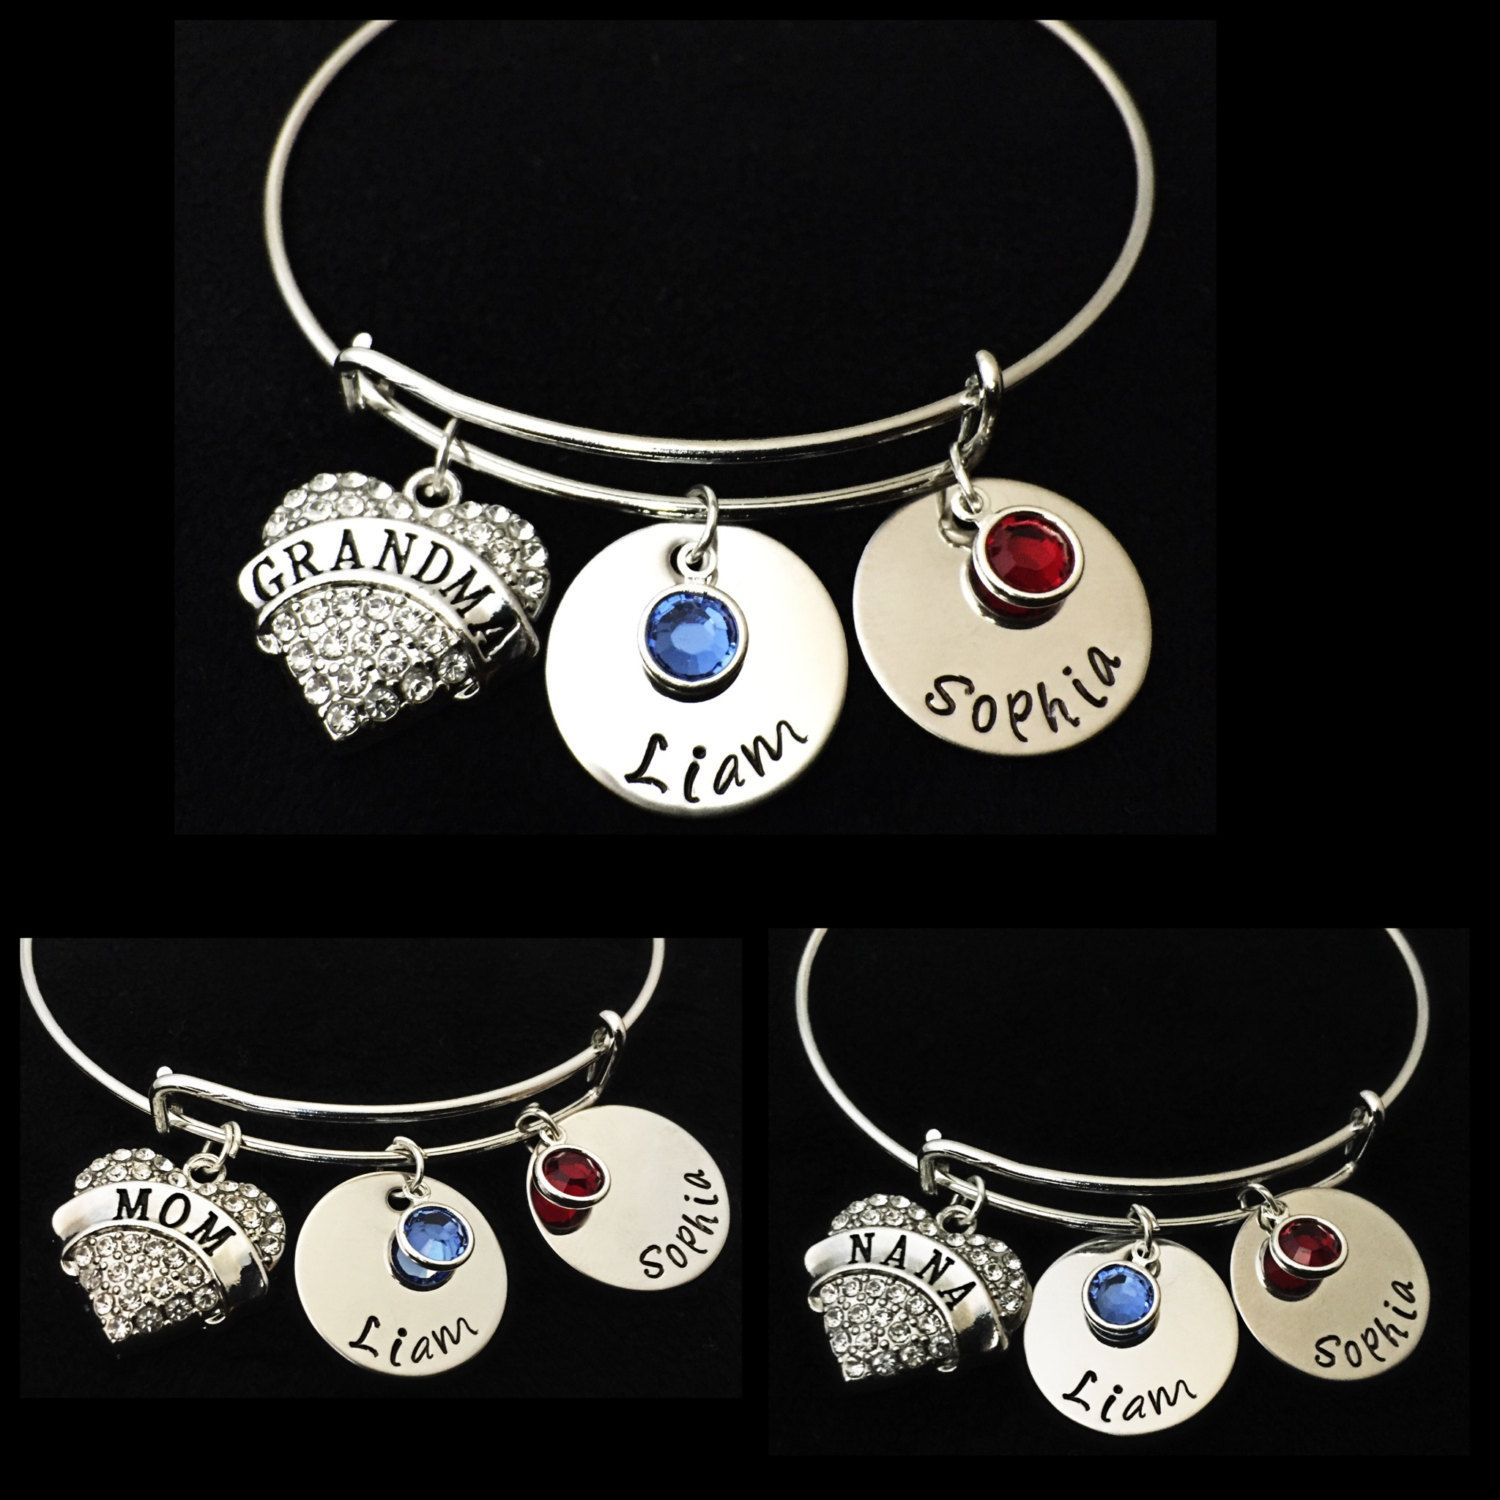 grandkids family grandkid grandma necklace birthstone my pin tribe mom